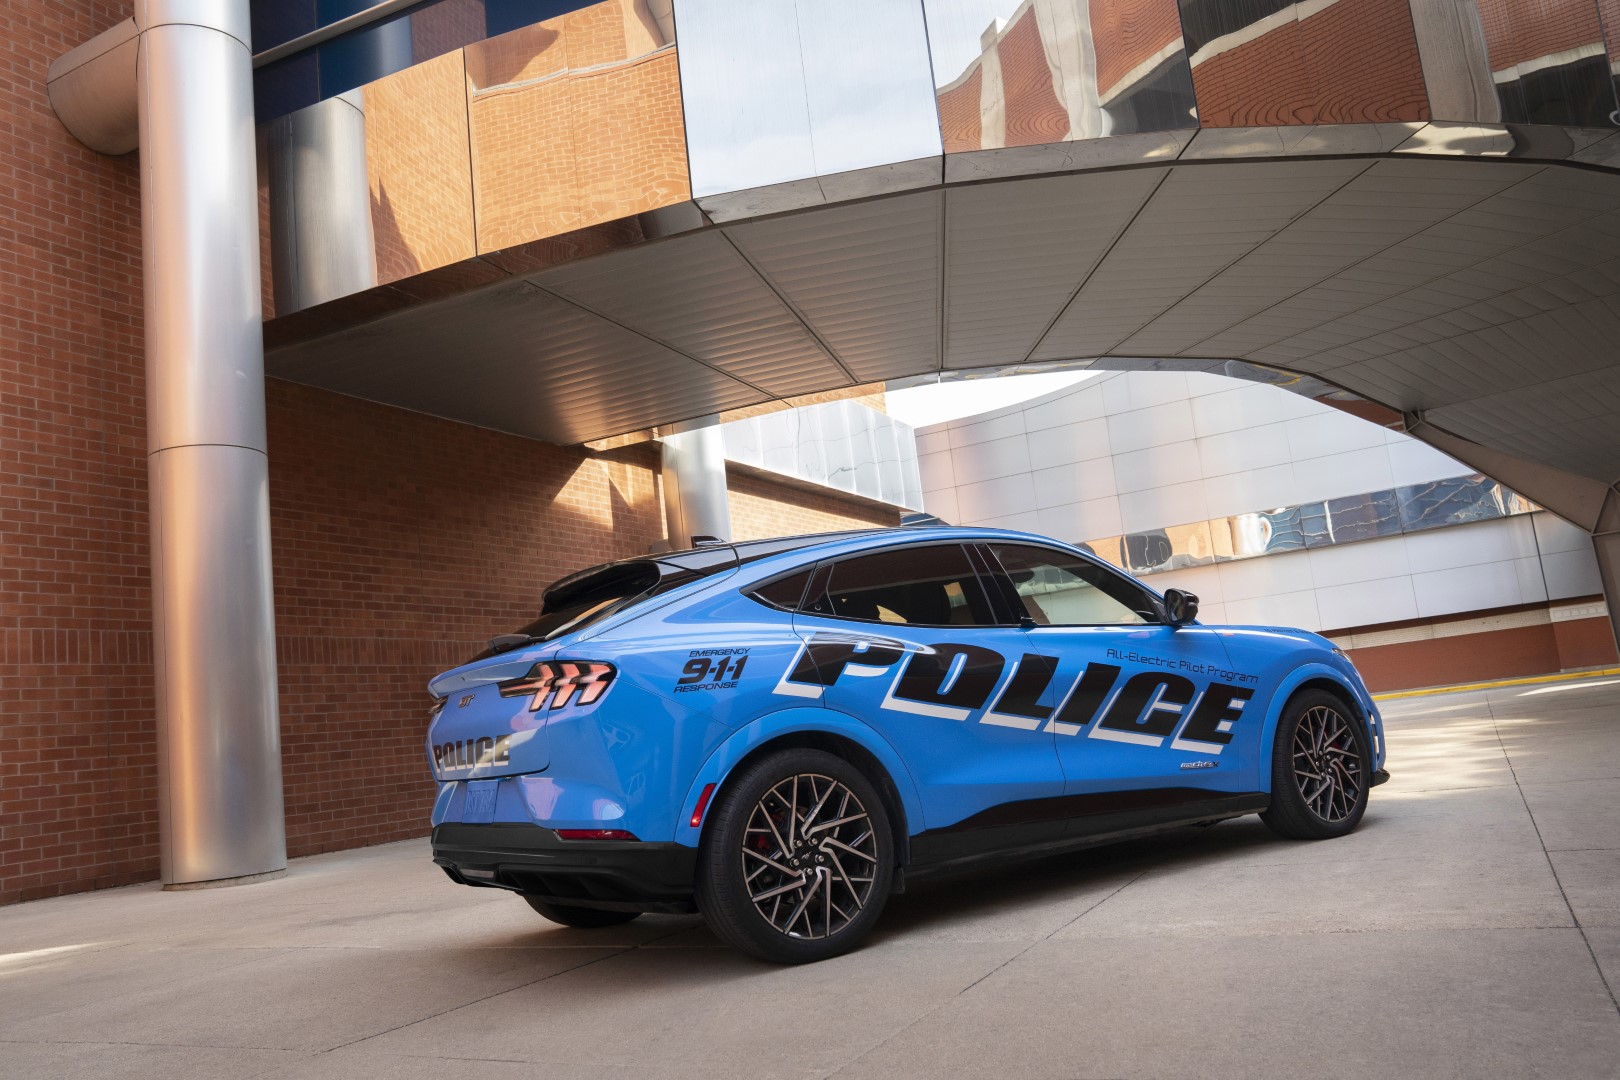 Ford Mustang Mach-E Police